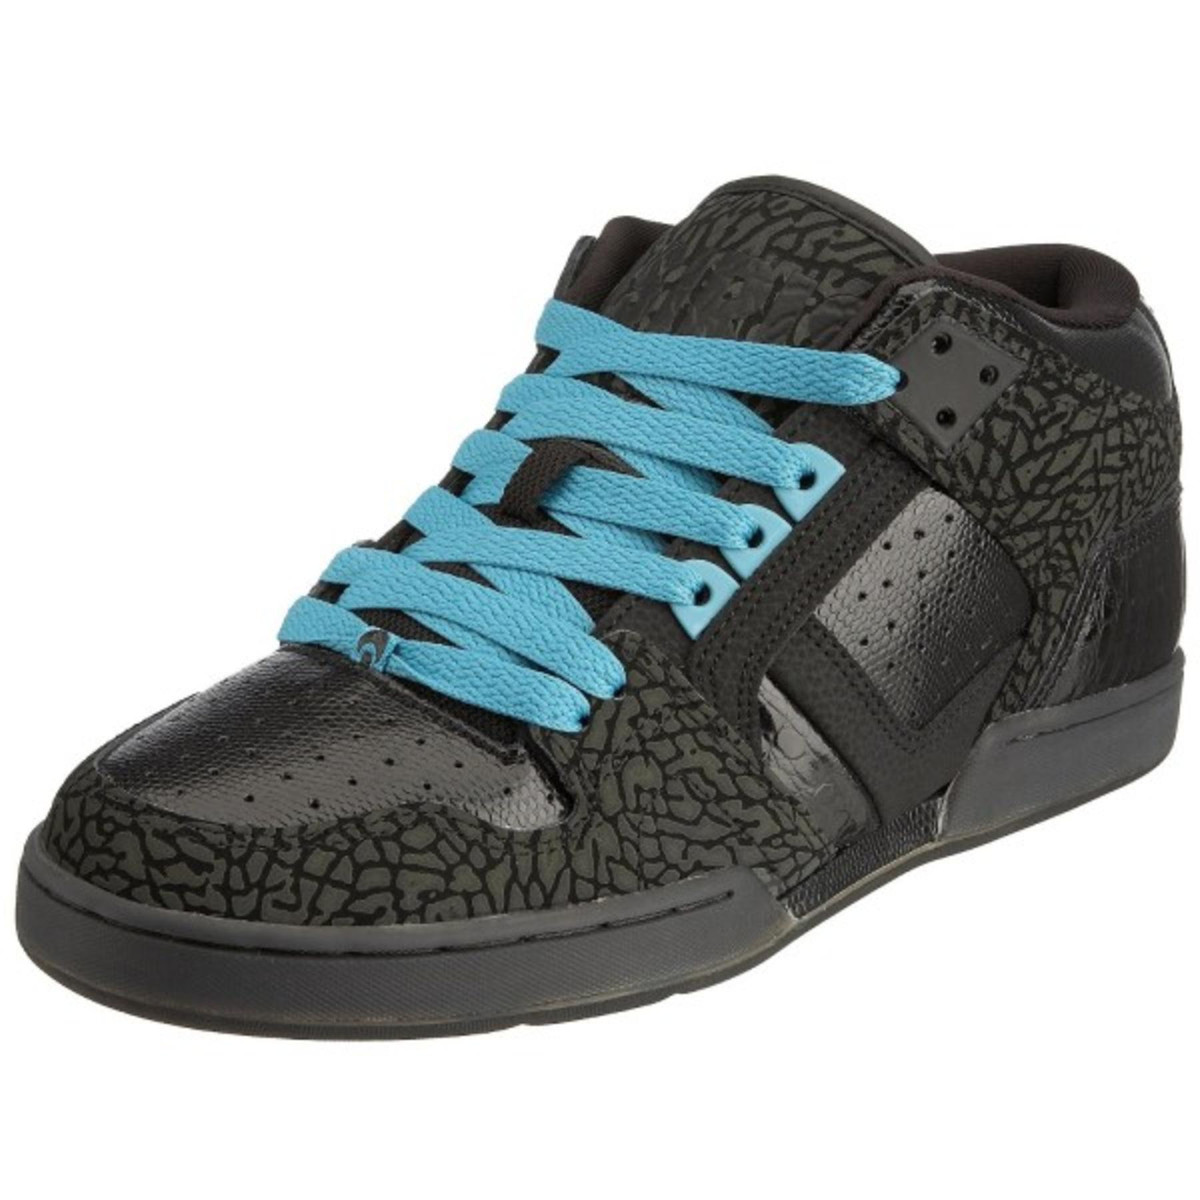 9223812a476 Osiris Skateboard Schuhe South Bronx Black/Grey/Pagoda - Kaufen bei ...